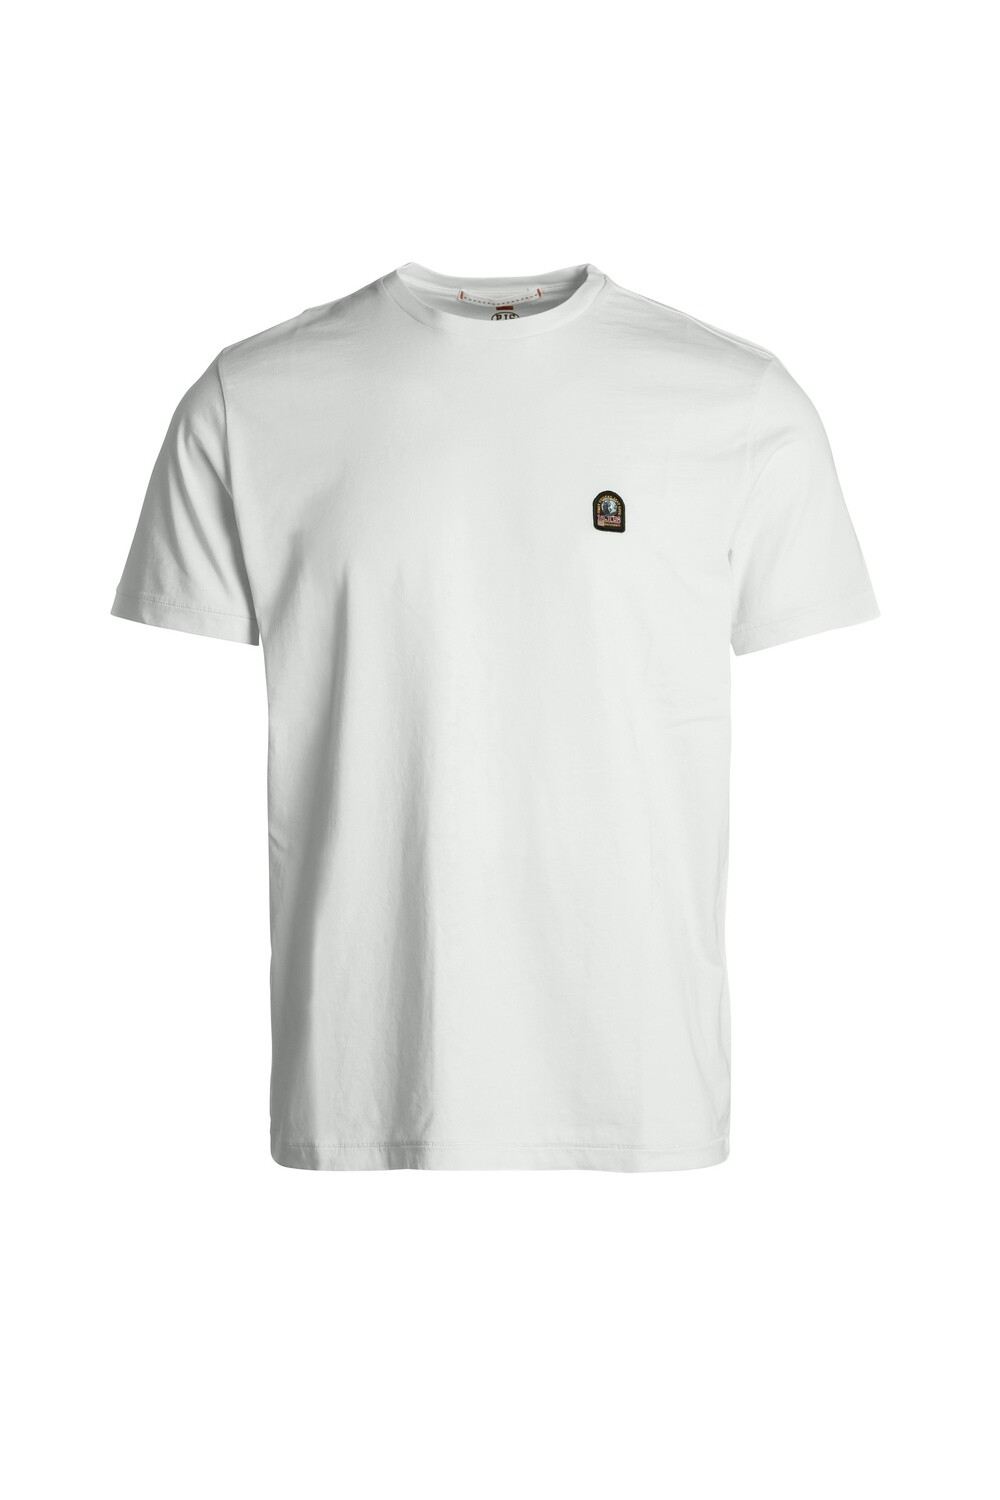 Parajumpers   Patch tee   Off White